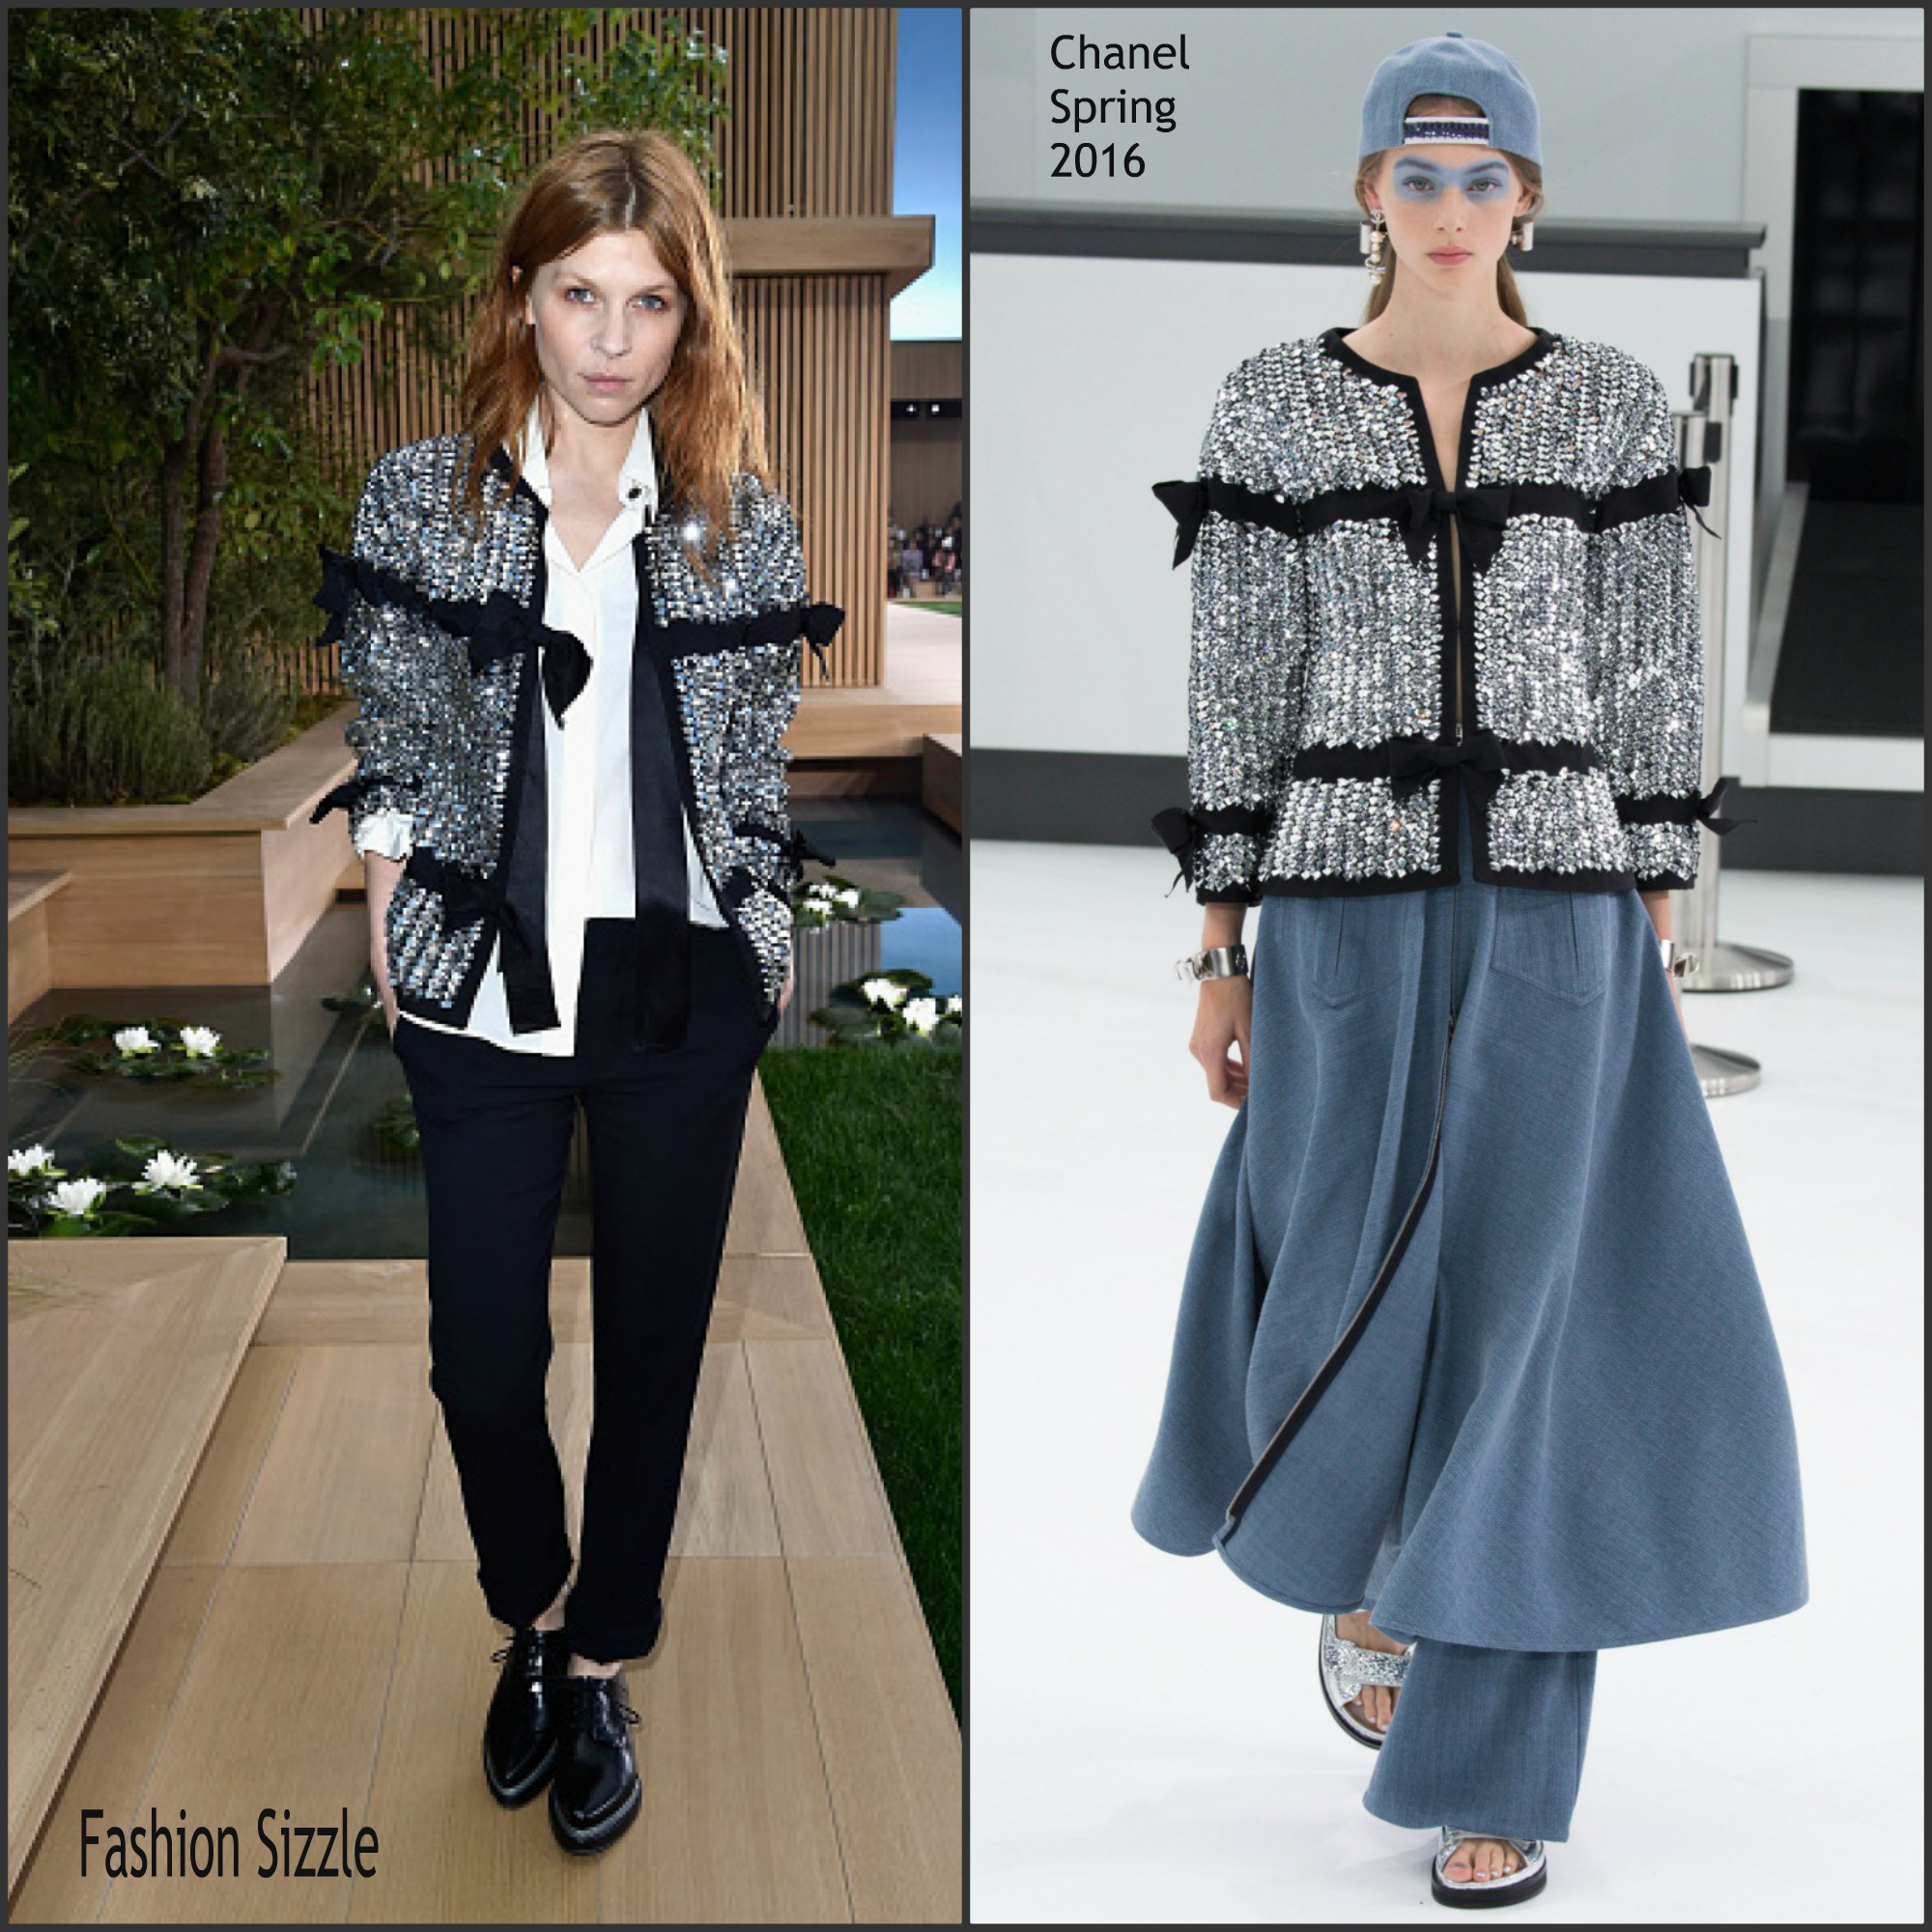 clemence-posey-in-chanel-chael-paris-fashion-week